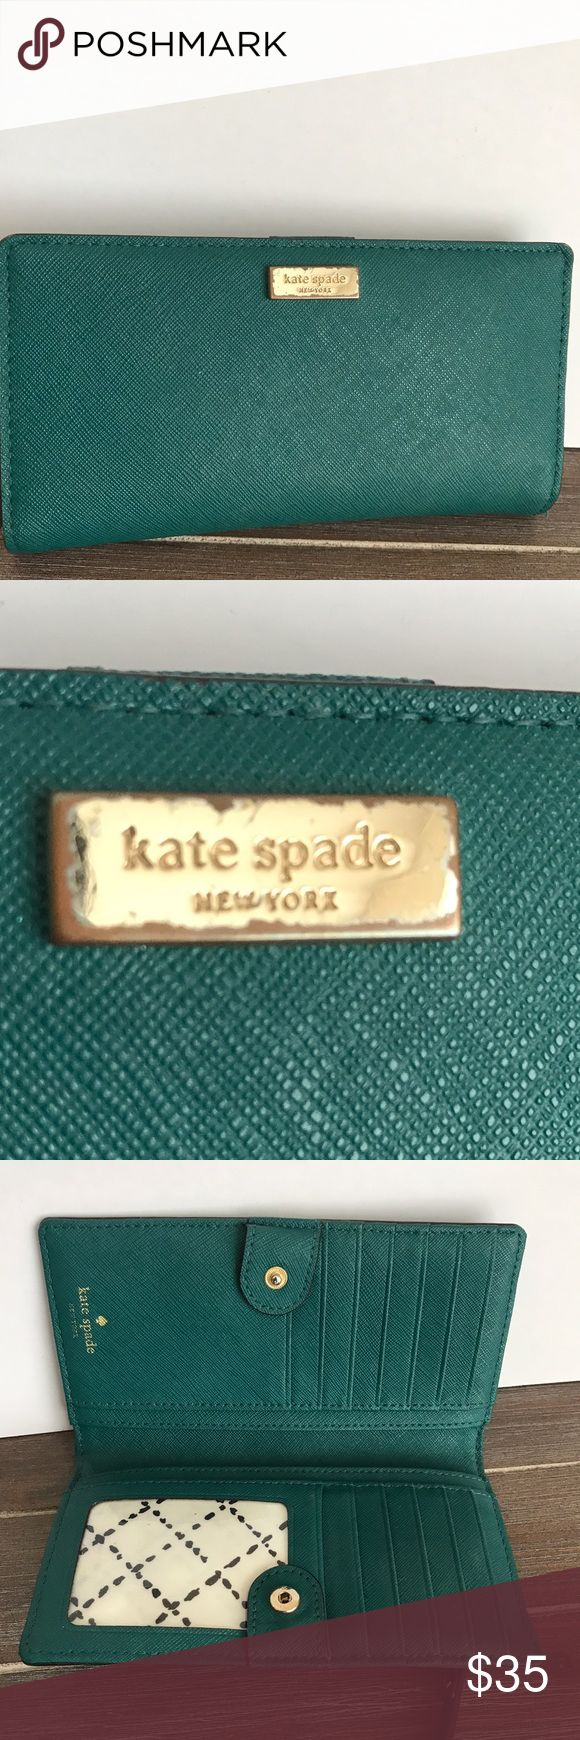 Kate Spade Cameron Street Stacy Wallet Don't like the price? MAKE AN OFFER ! Kate Spade Cameron Street Stacy Wallet. Used but in great condition. Kate Spade logo worn (see picture). kate spade Bags Wallets